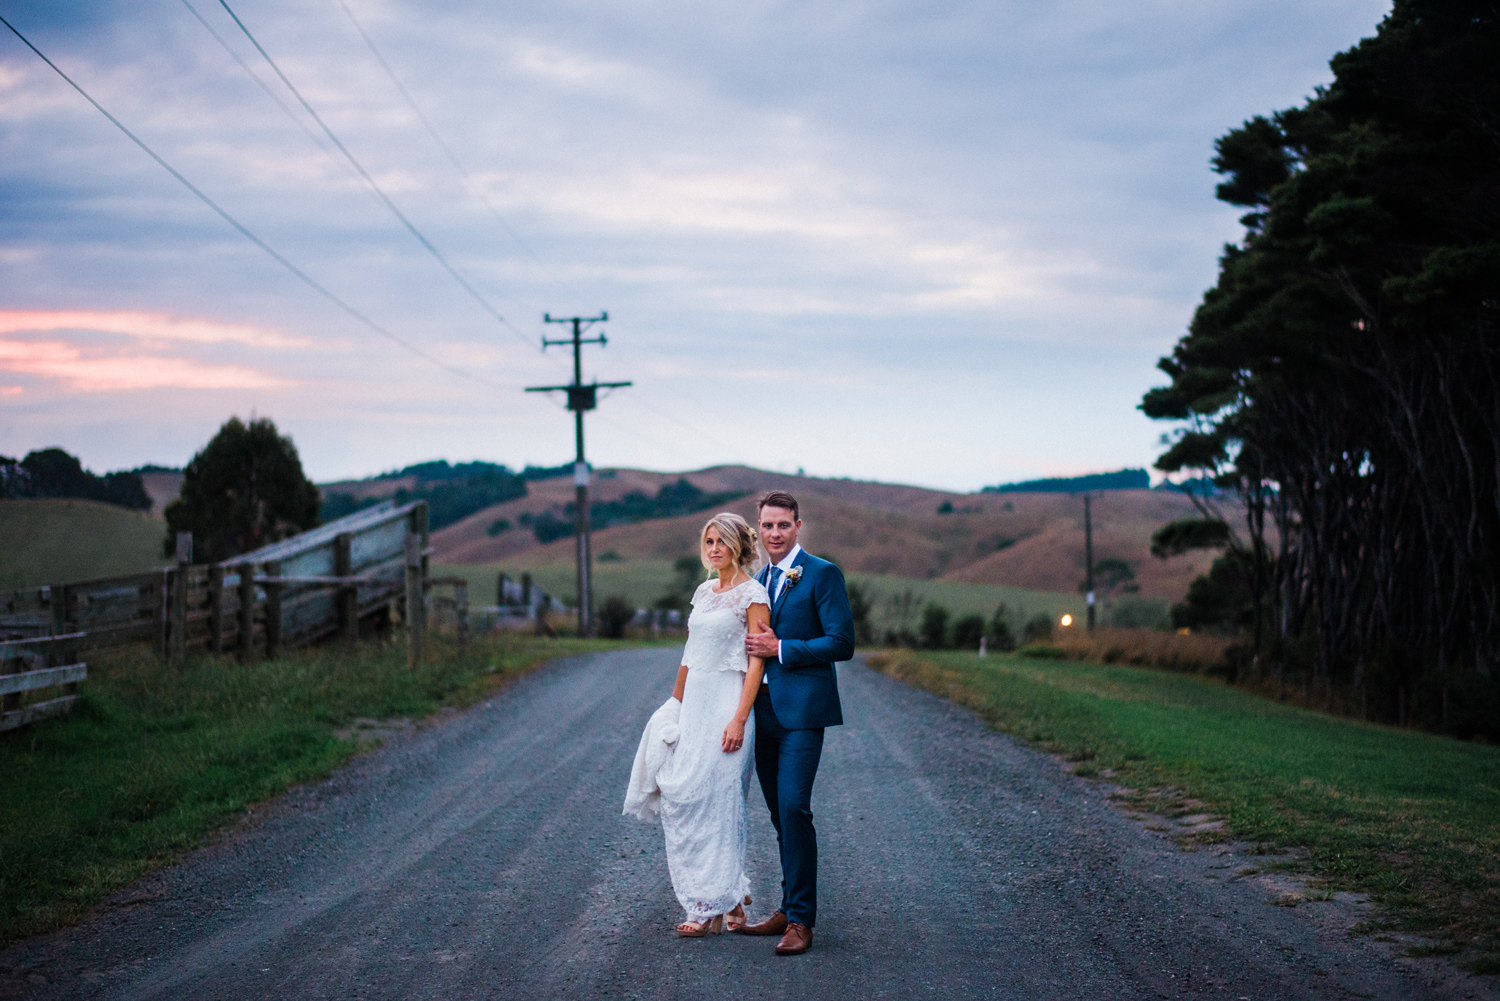 new-zealand-wedding-film-photographer-ryan-flynn-0055.JPG